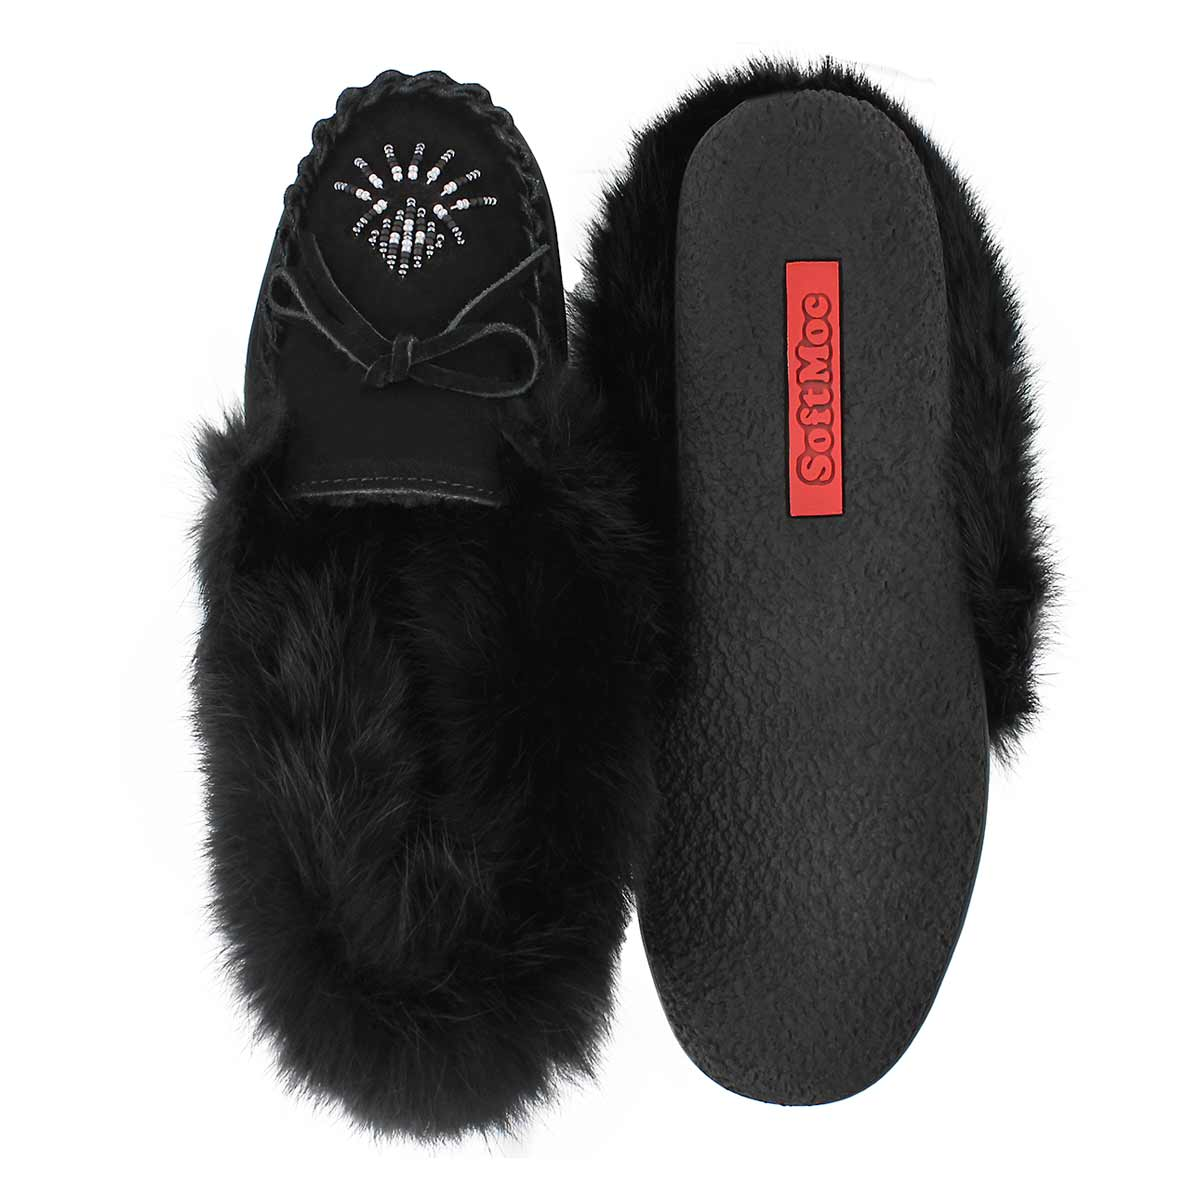 Lds Cherry blk rabbit fur moccasin